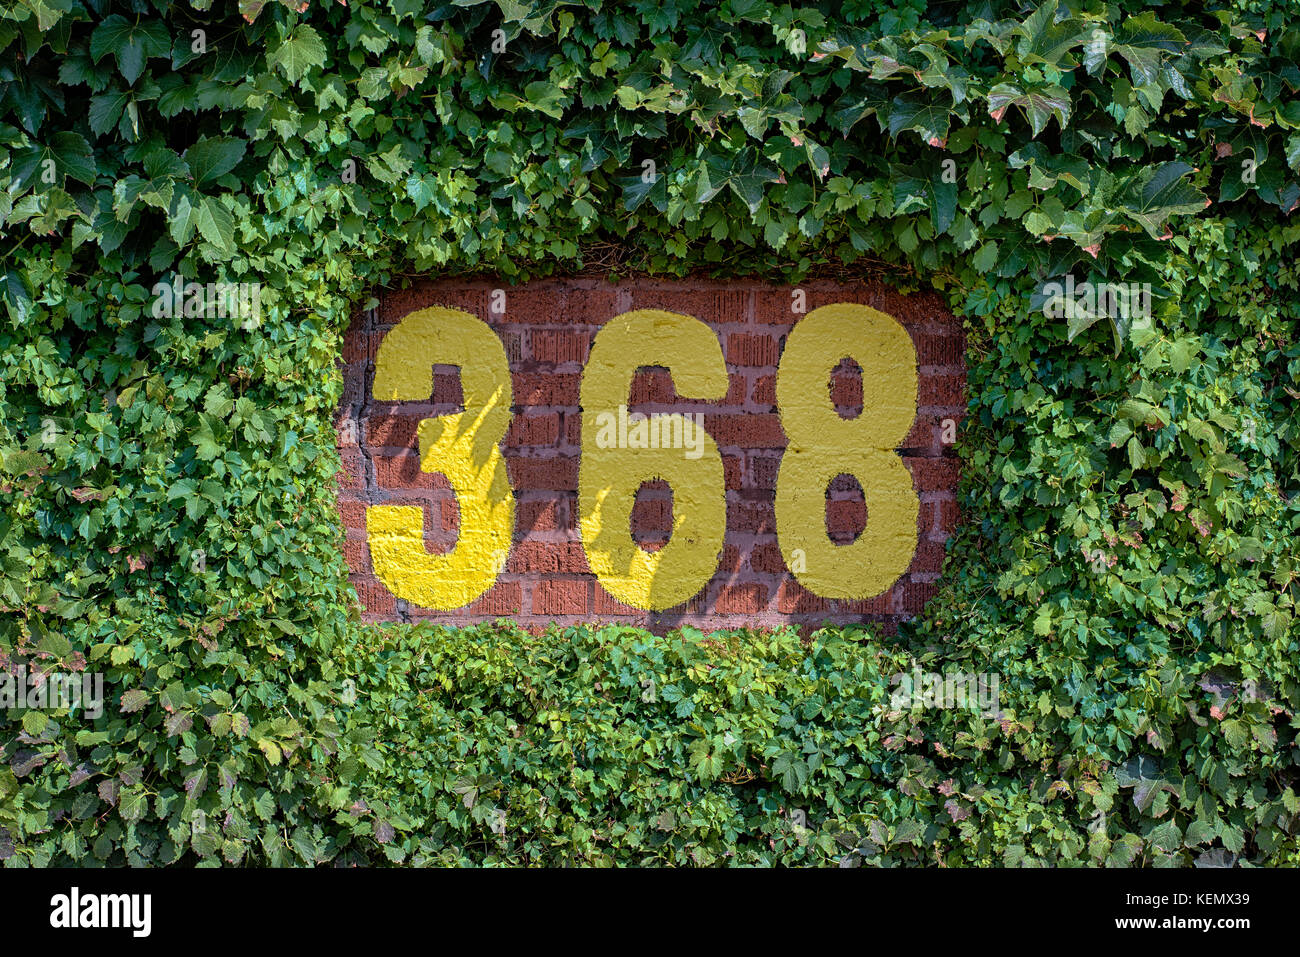 368 feet sign on the outfield wall of wrigley field in chicago stock 368 feet sign on the outfield wall of wrigley field in chicago illinois buycottarizona Images